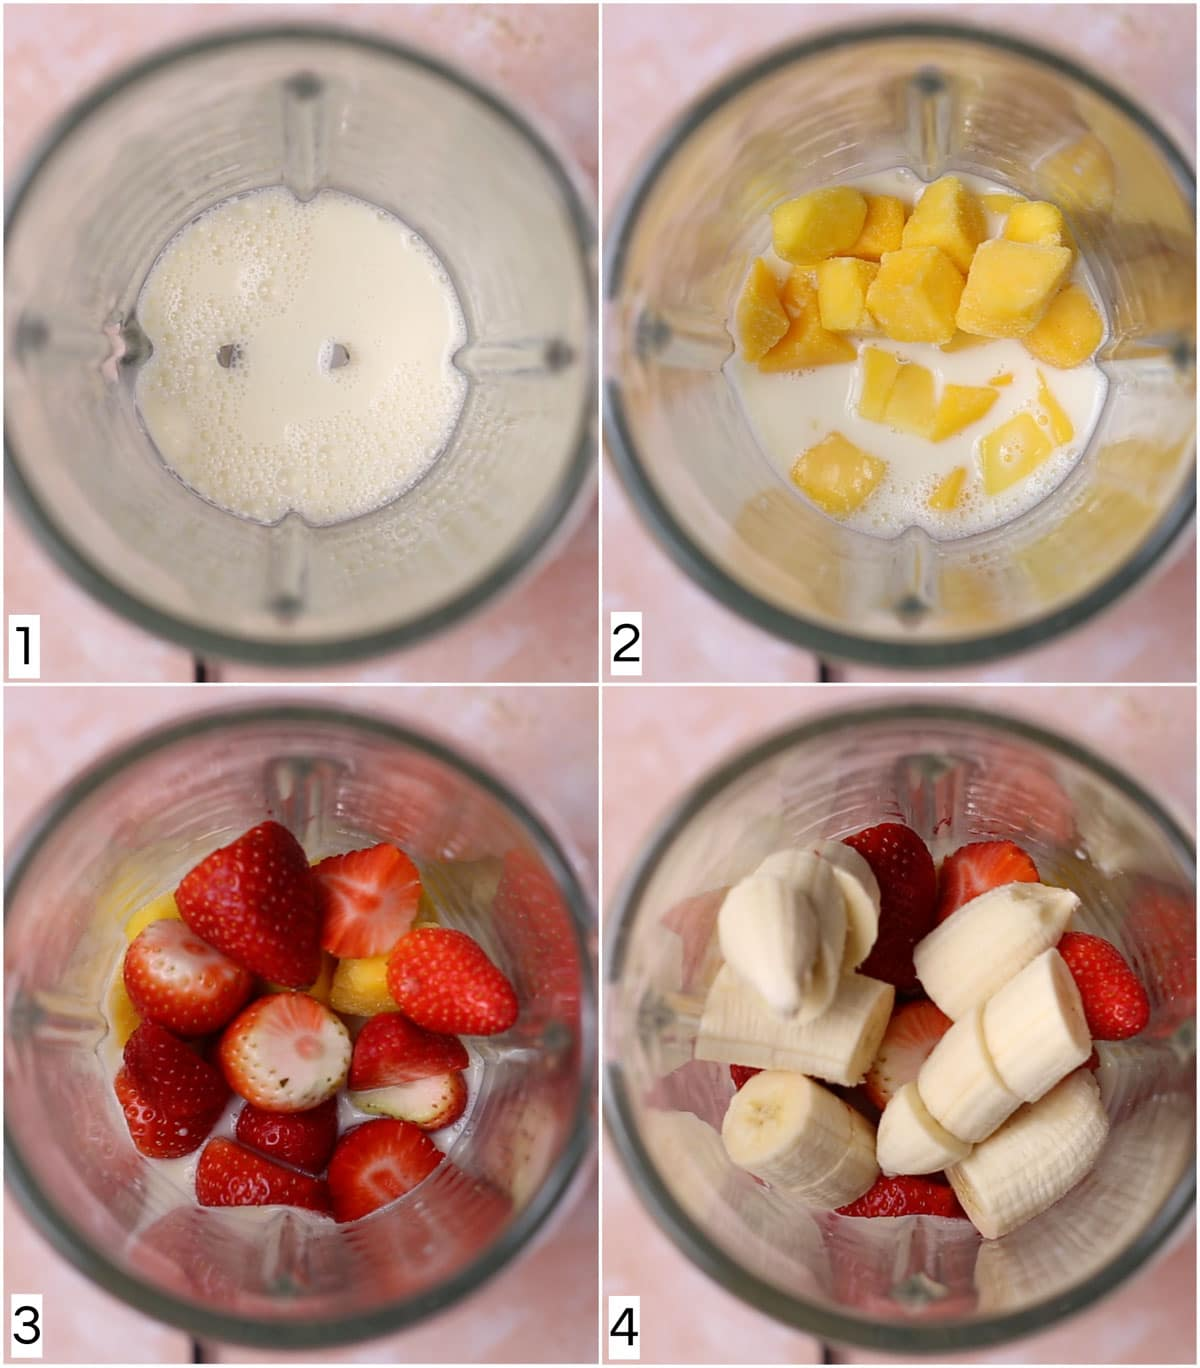 A collage of four images showing the steps in making an oat milk smoothie.